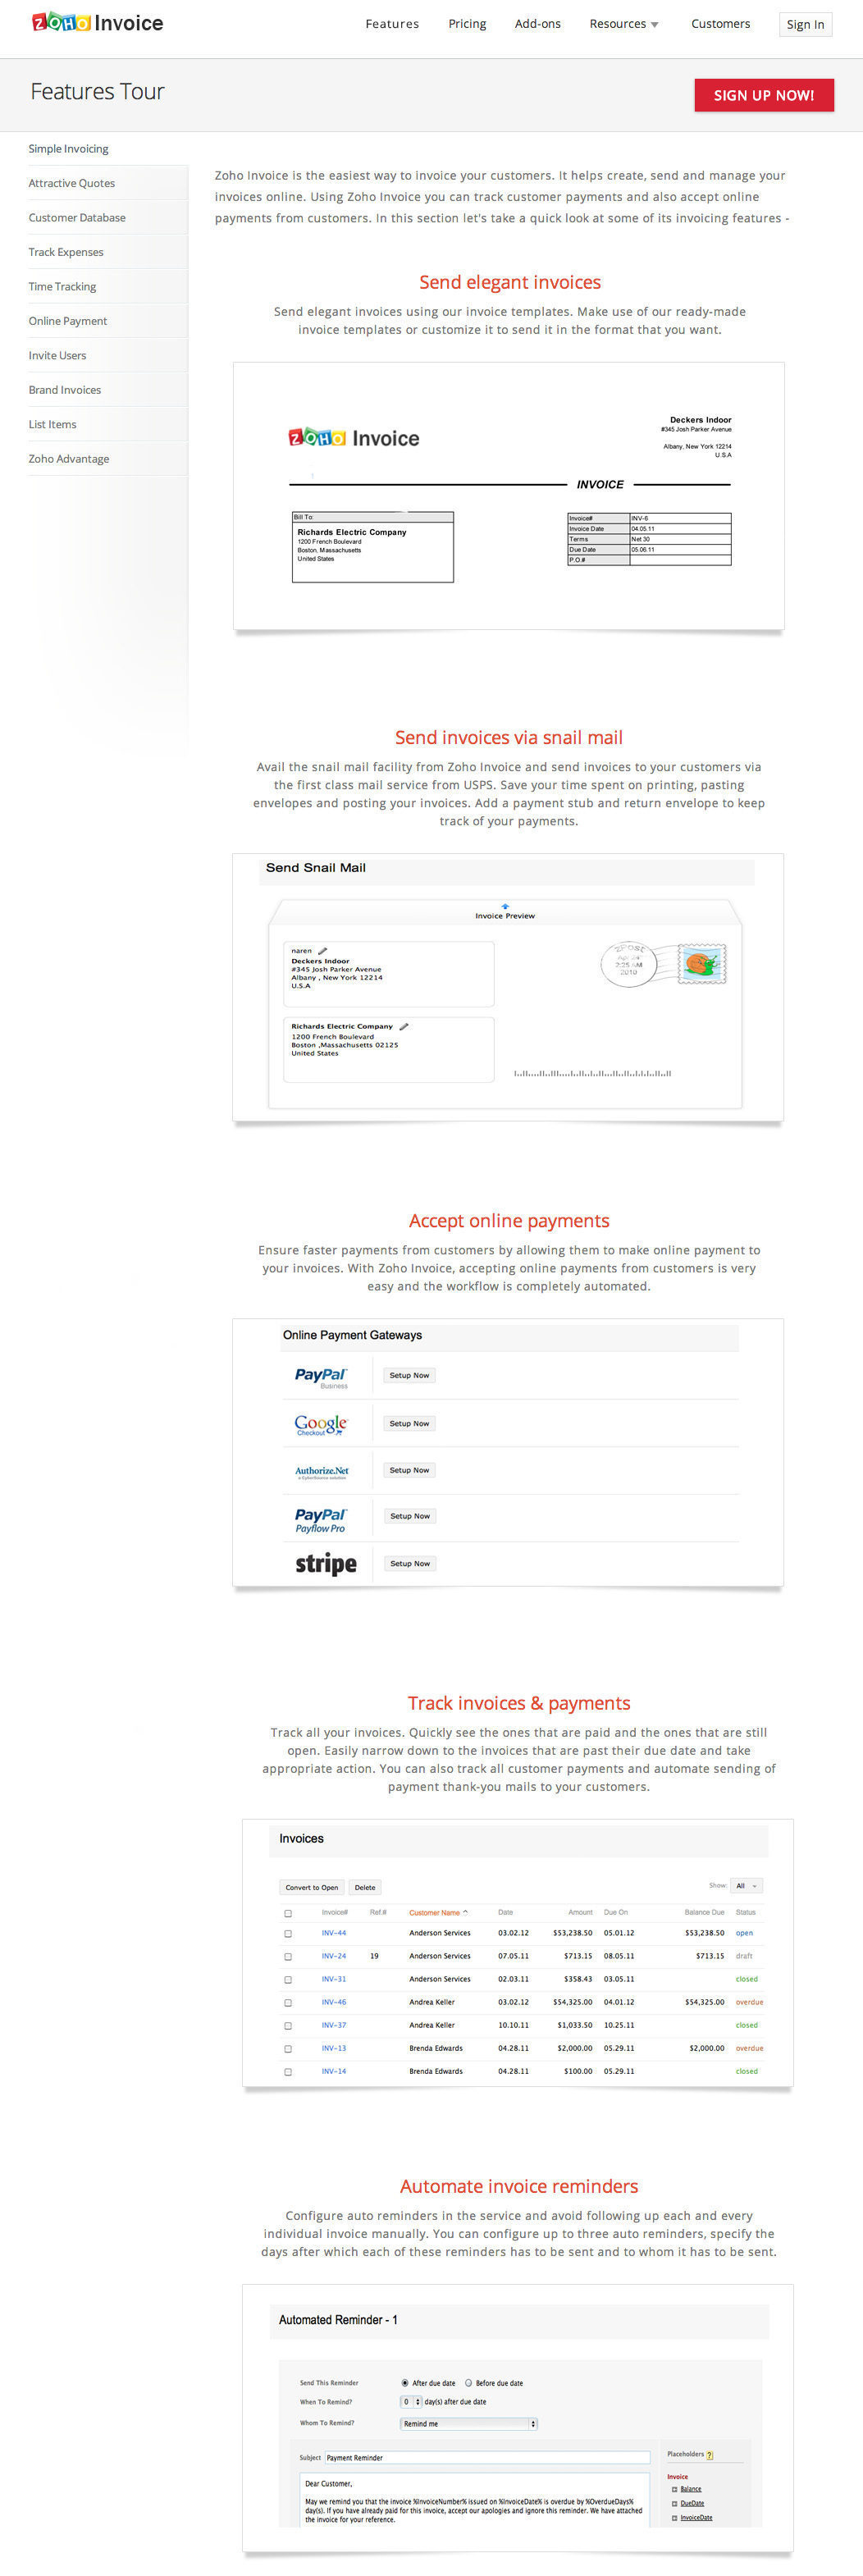 Centralasianshepherdus  Unusual Top  Complaints And Reviews About Zoho Invoice With Fair Zoho Invoice Pricing Zoho Invoice  Simple Invoicing  With Delightful What Is An Invoice Payment Also Buy Invoice In Addition Template Of Invoice For Services And Example Invoice Template Word As Well As Free Invoice Design Template Additionally Make A Invoice Template From Consumeraffairscom With Centralasianshepherdus  Fair Top  Complaints And Reviews About Zoho Invoice With Delightful Zoho Invoice Pricing Zoho Invoice  Simple Invoicing  And Unusual What Is An Invoice Payment Also Buy Invoice In Addition Template Of Invoice For Services From Consumeraffairscom